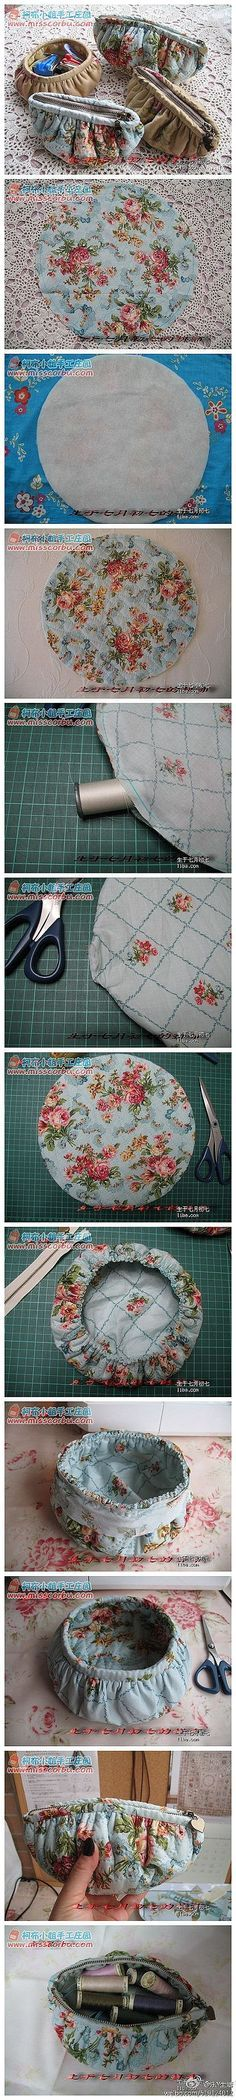 Shabby chic from vintage Laura Ashley pri. Shabby chic from vintage Laura Ashley prints, bedding or dres… circle pouch. Shabby chic from vintage Laura Ashley prints, bedding or dresses. Sewing Hacks, Sewing Tutorials, Sewing Patterns, Fabric Crafts, Sewing Crafts, Sewing Projects, Ideas Paso A Paso, Diy Sac, Fabric Bags